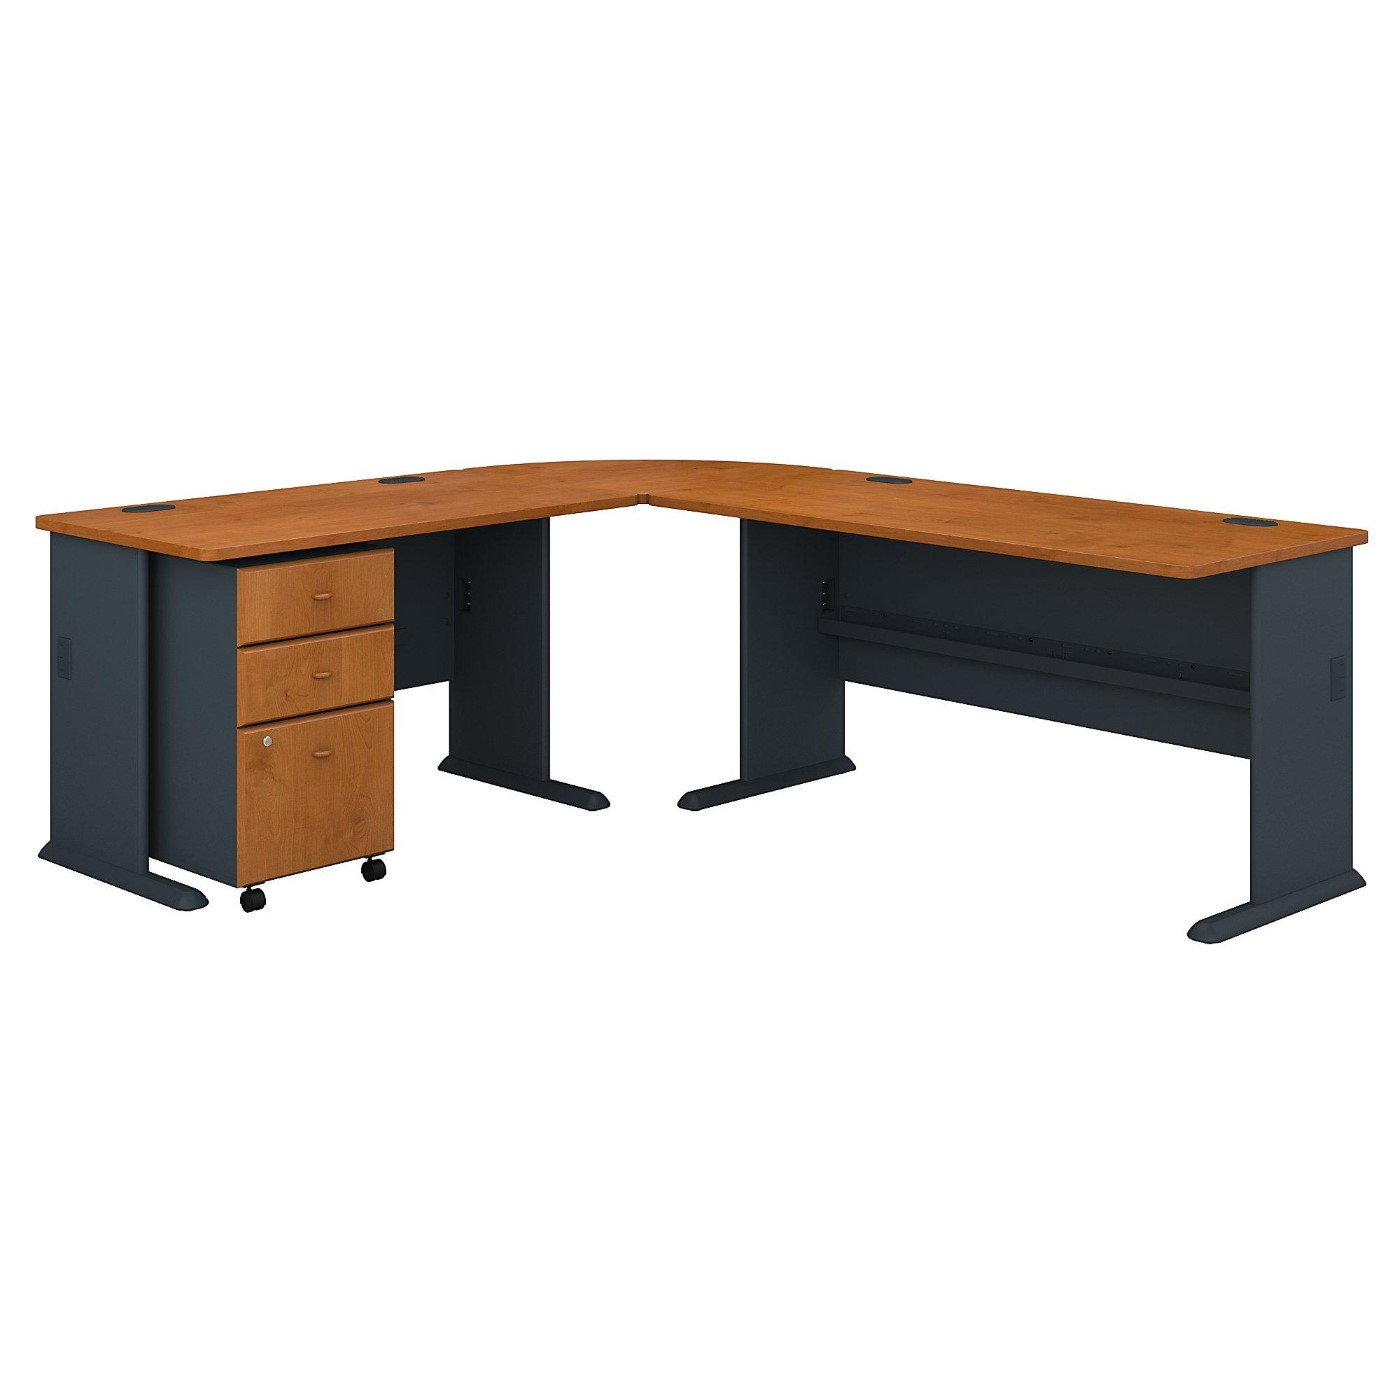 BUSH BUSINESS FURNITURE SERIES A 87W X 75D L SHAPED DESK WITH MOBILE FILE CABINET. FREE SHIPPING.  SALE DEDUCT 10% MORE ENTER '10percent' IN COUPON CODE BOX WHILE CHECKING OUT.